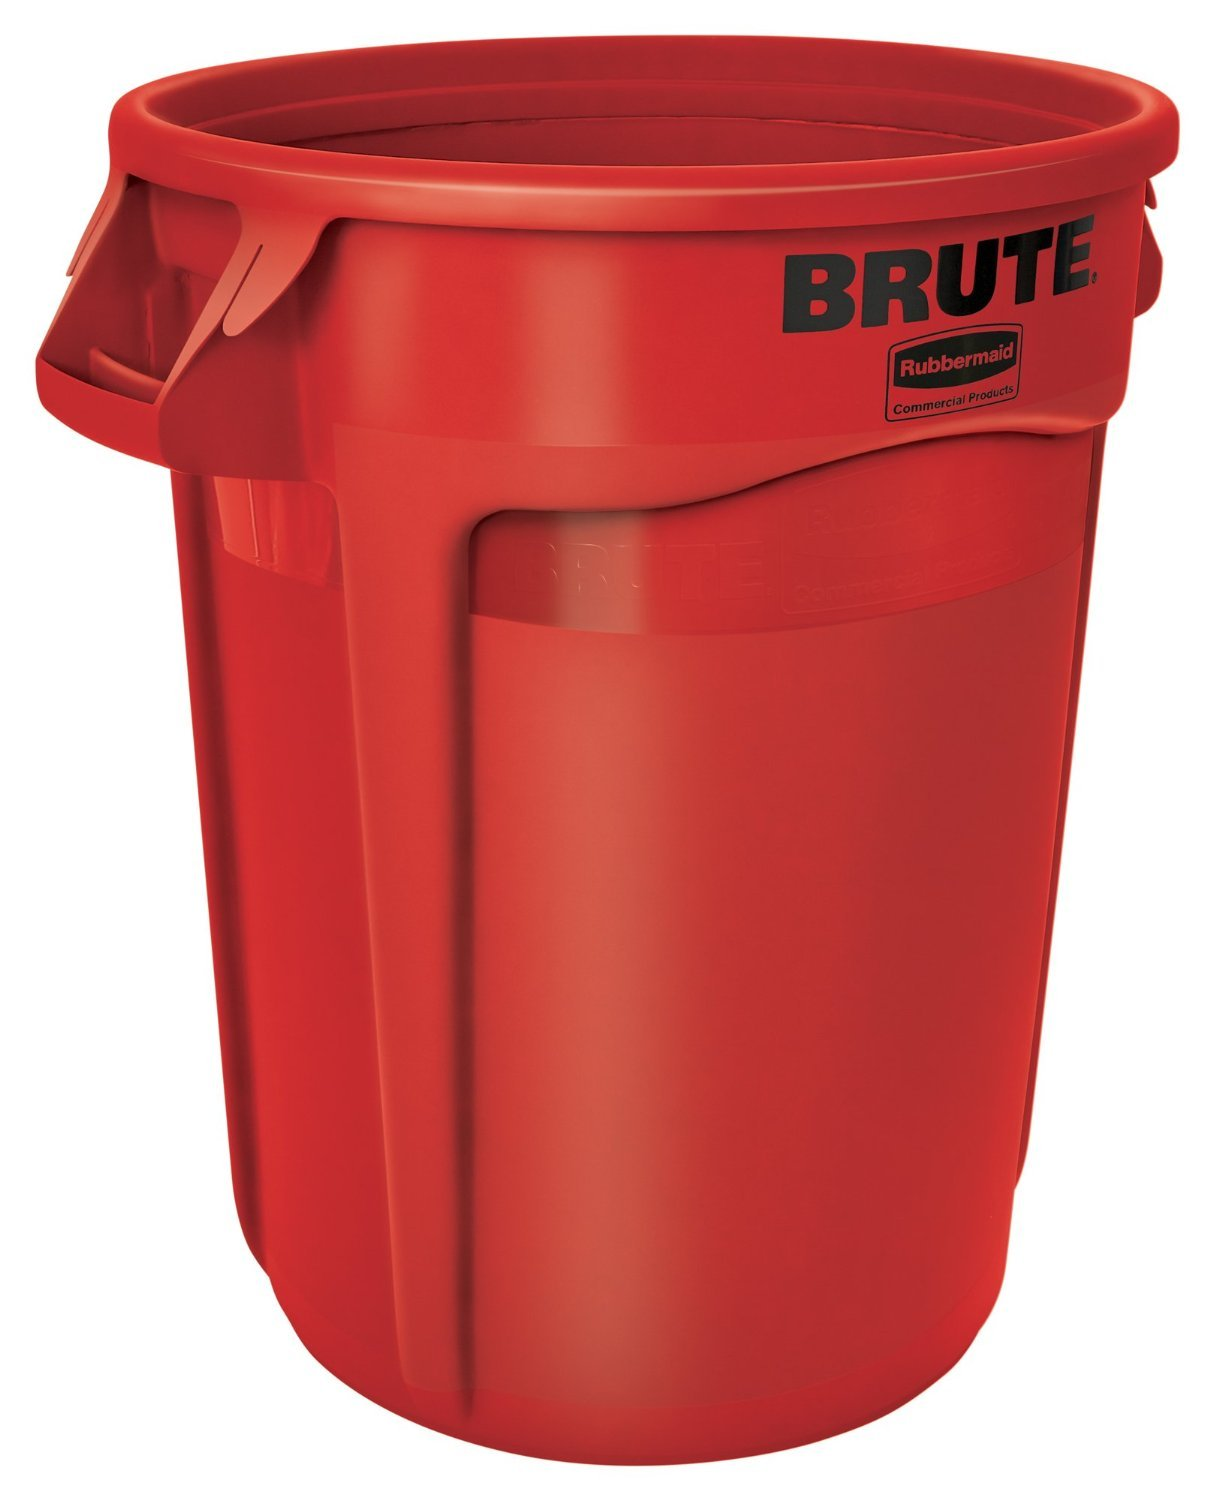 Rubbermaid Commercial BRUTE Heavy-Duty Round Waste/Utility Container with Venting Channels, 32-gallon, Red (FG263200RED)